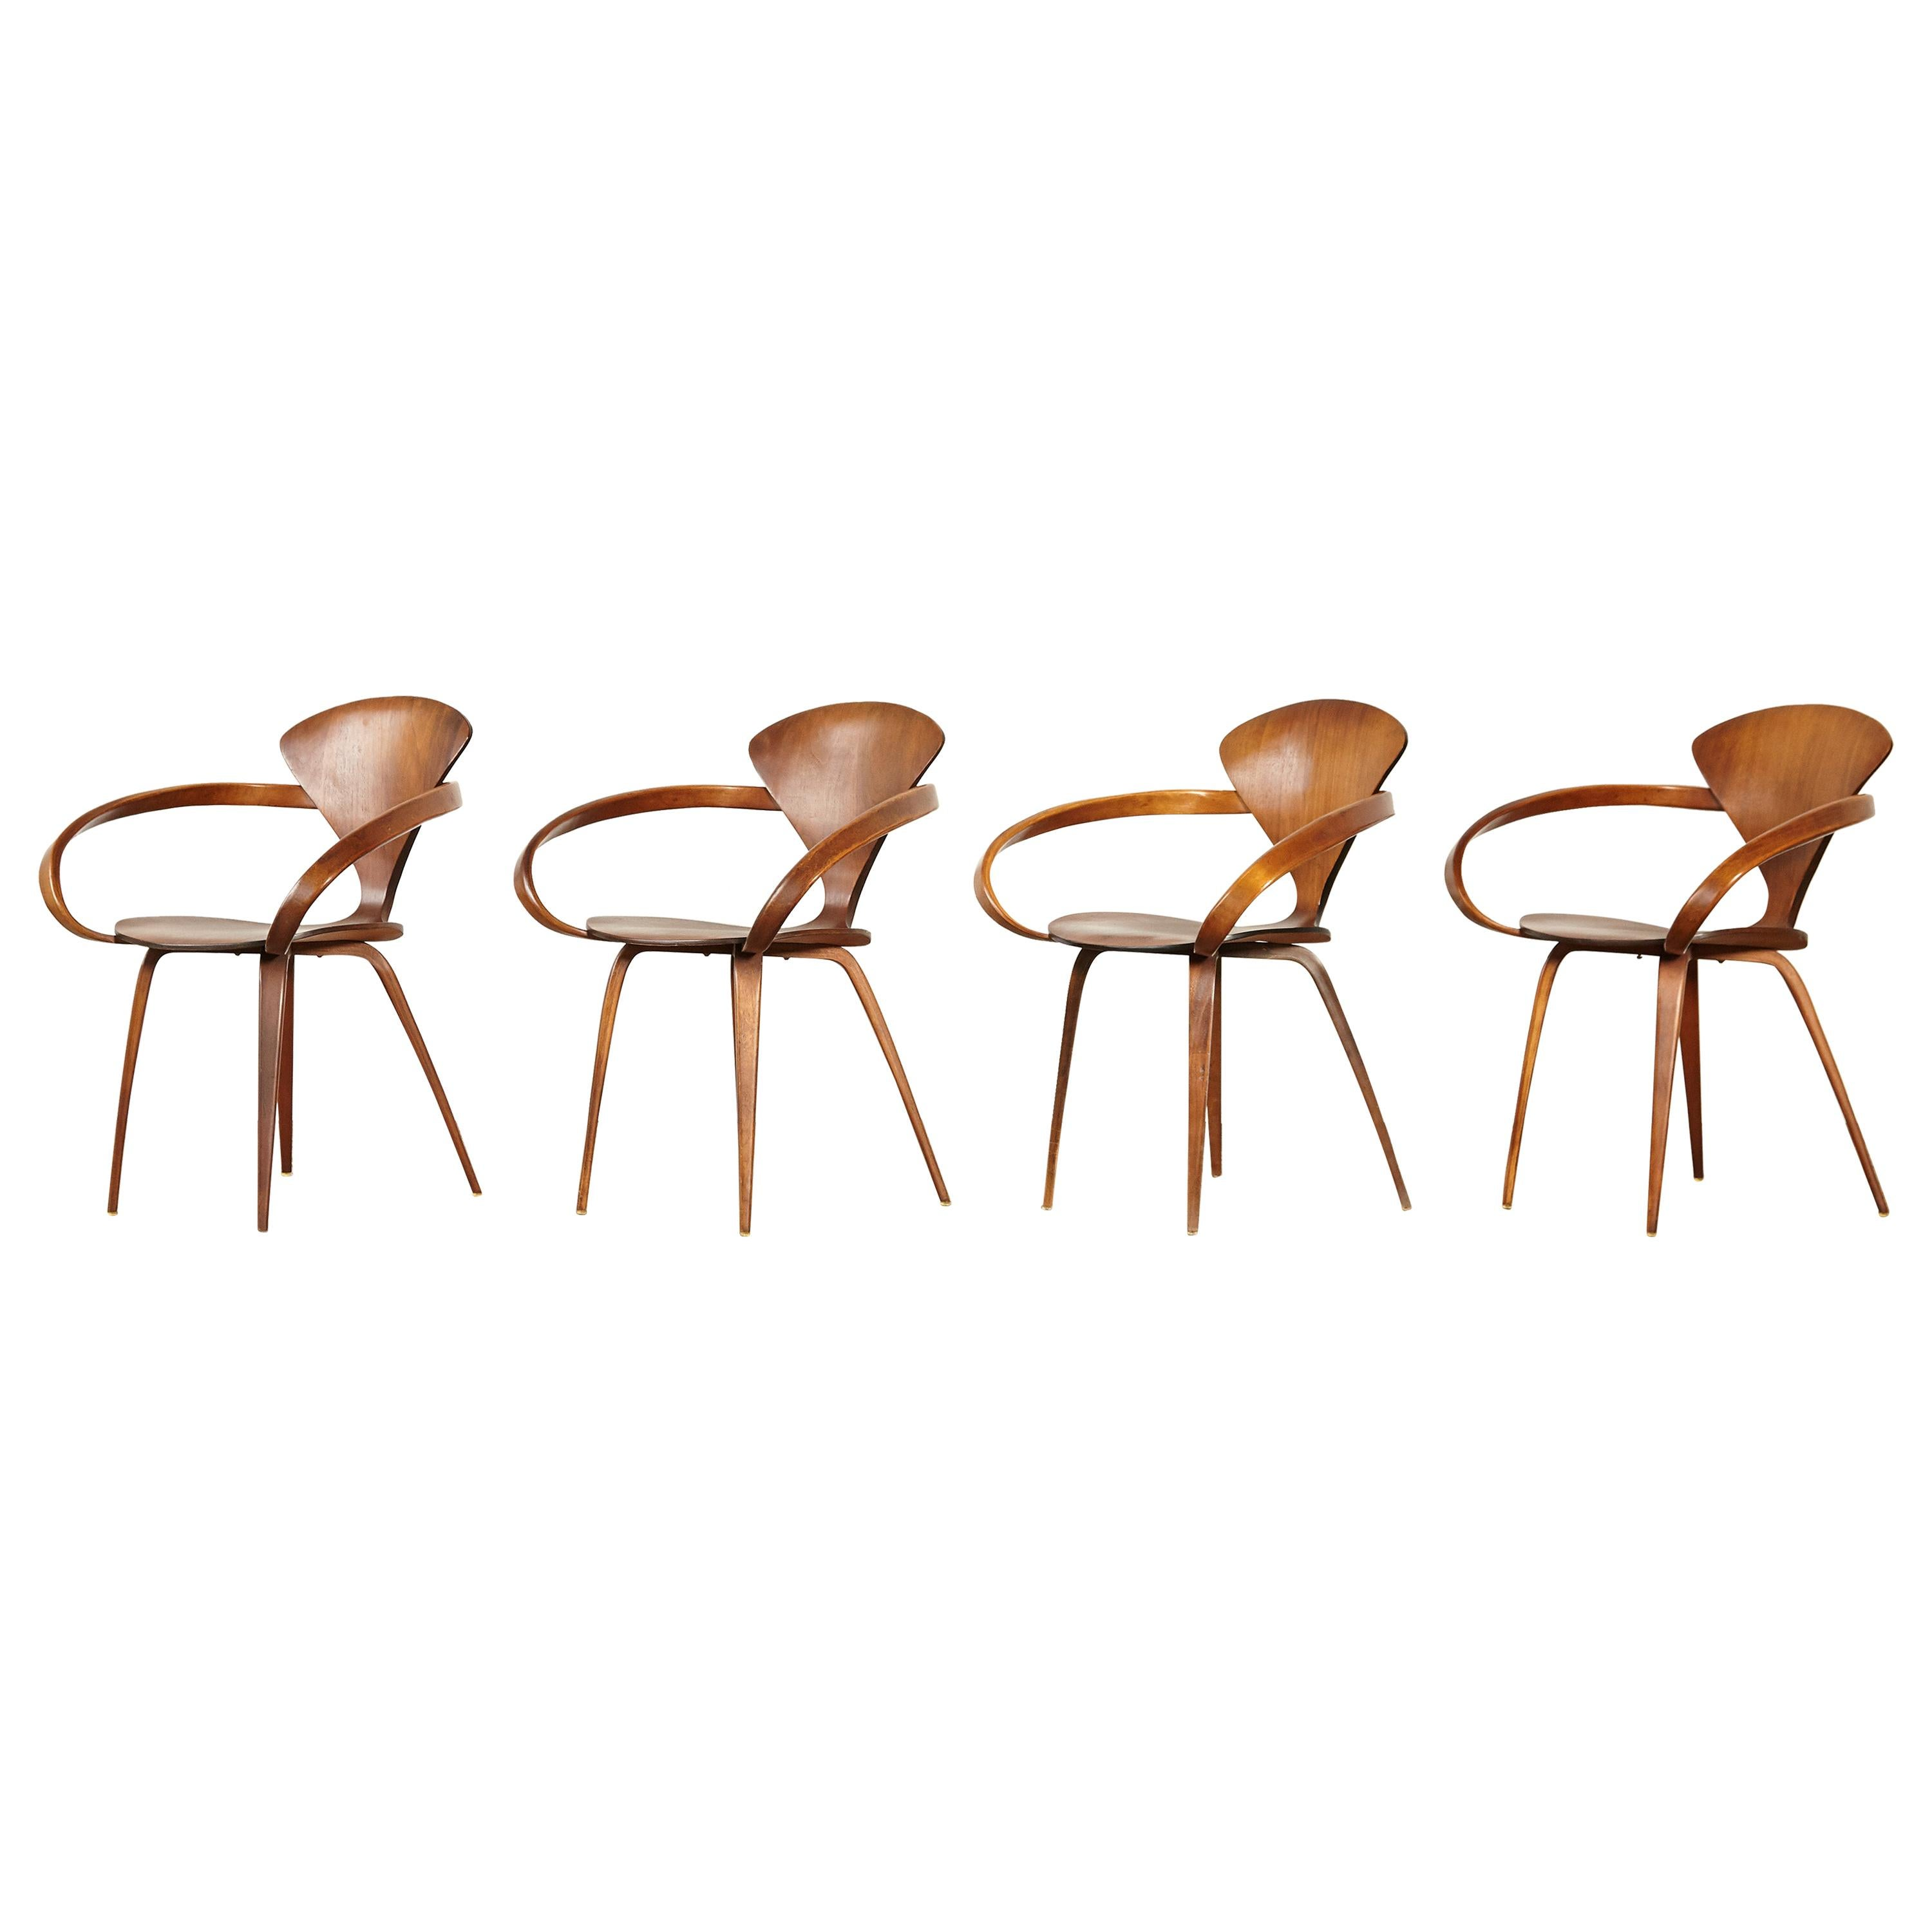 Set of Norman Cherner Pretzel Dining Chairs, Made by Plycraft, USA, 1960s